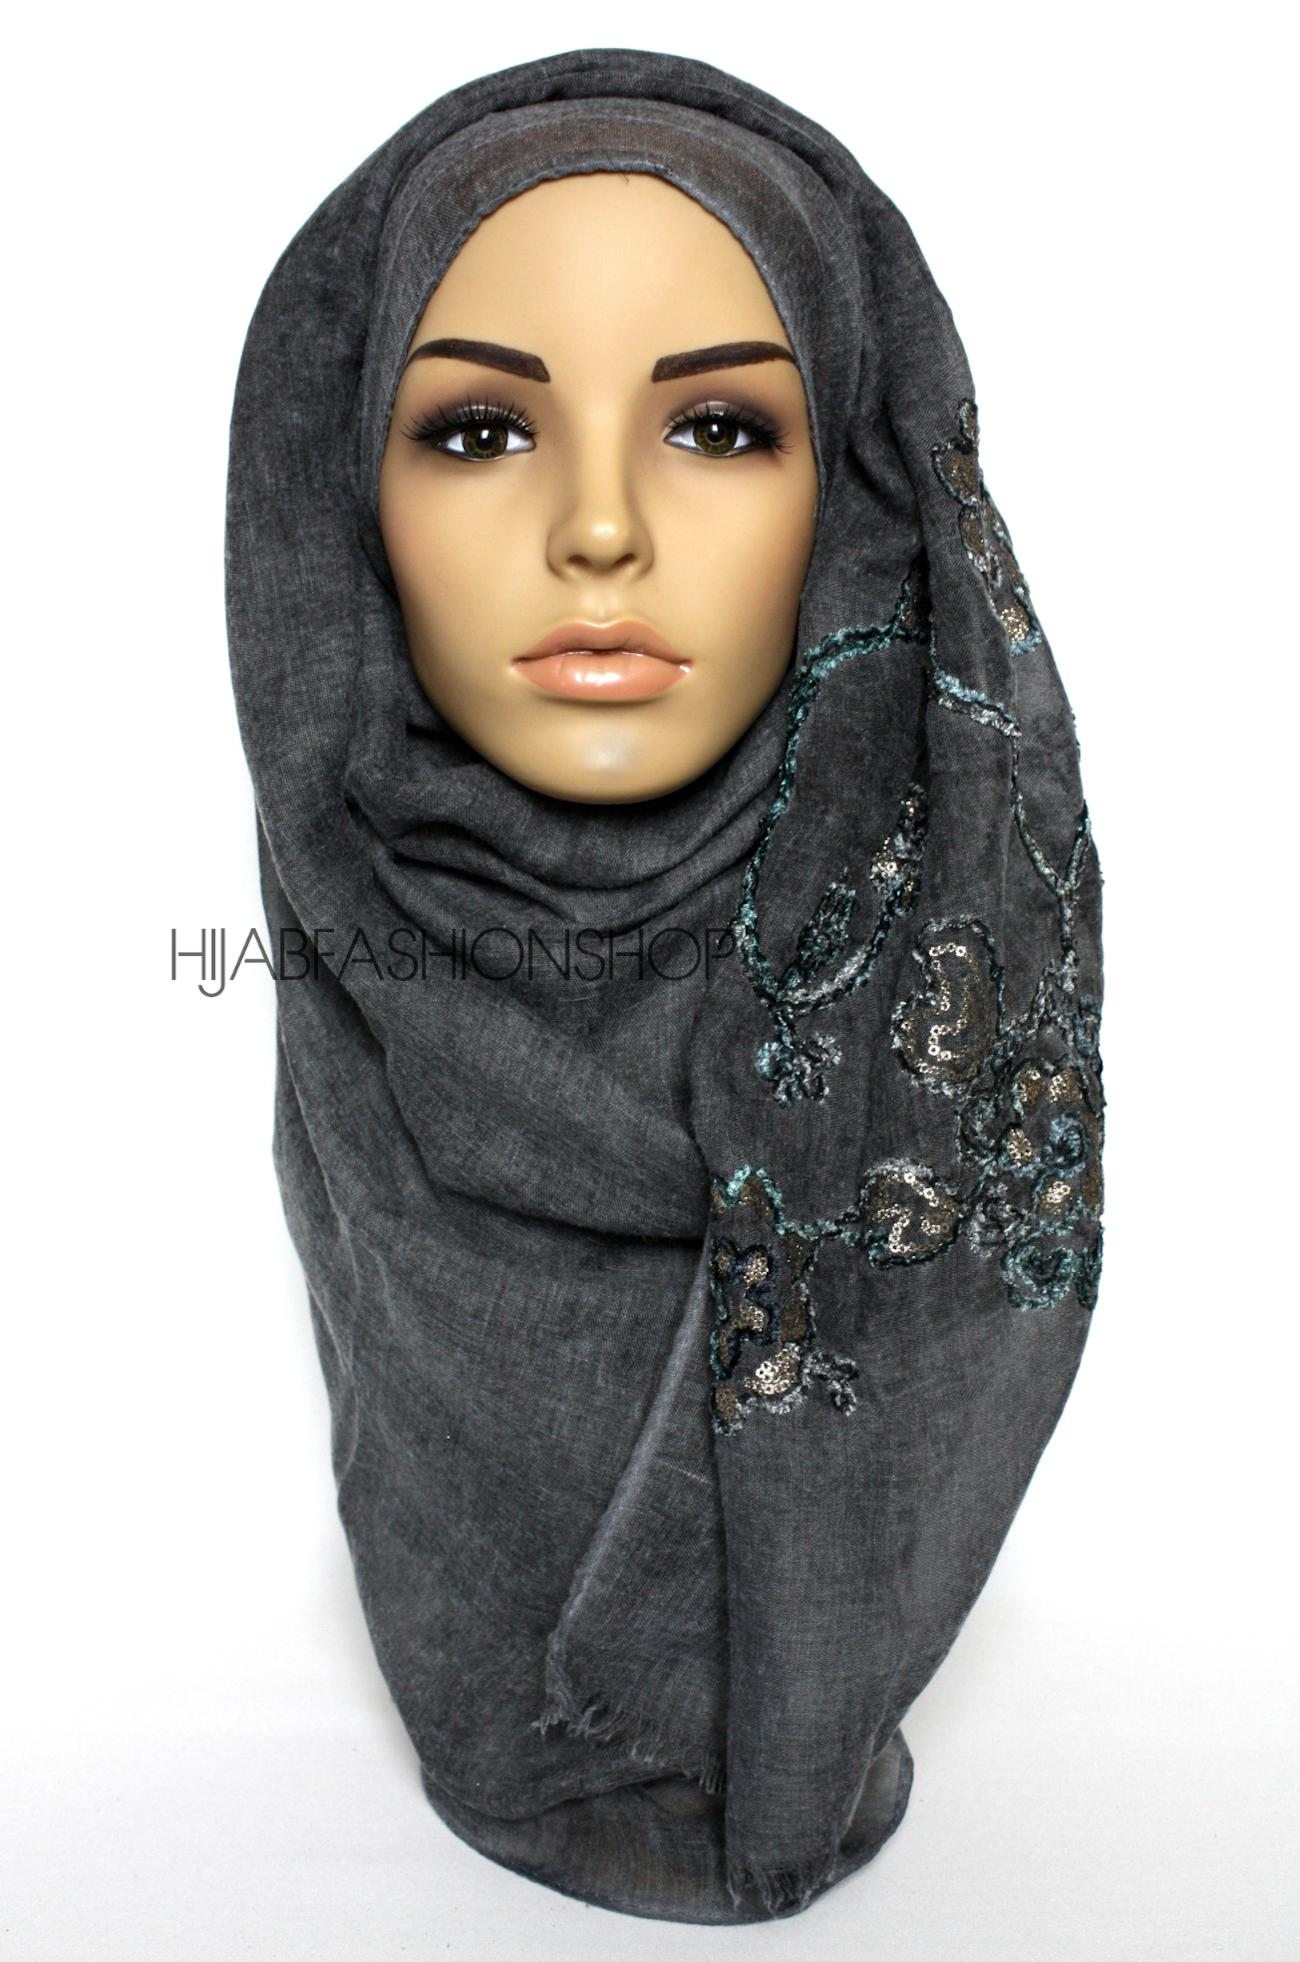 charcoal linen look hijab with floral velvet embroidery and sequins